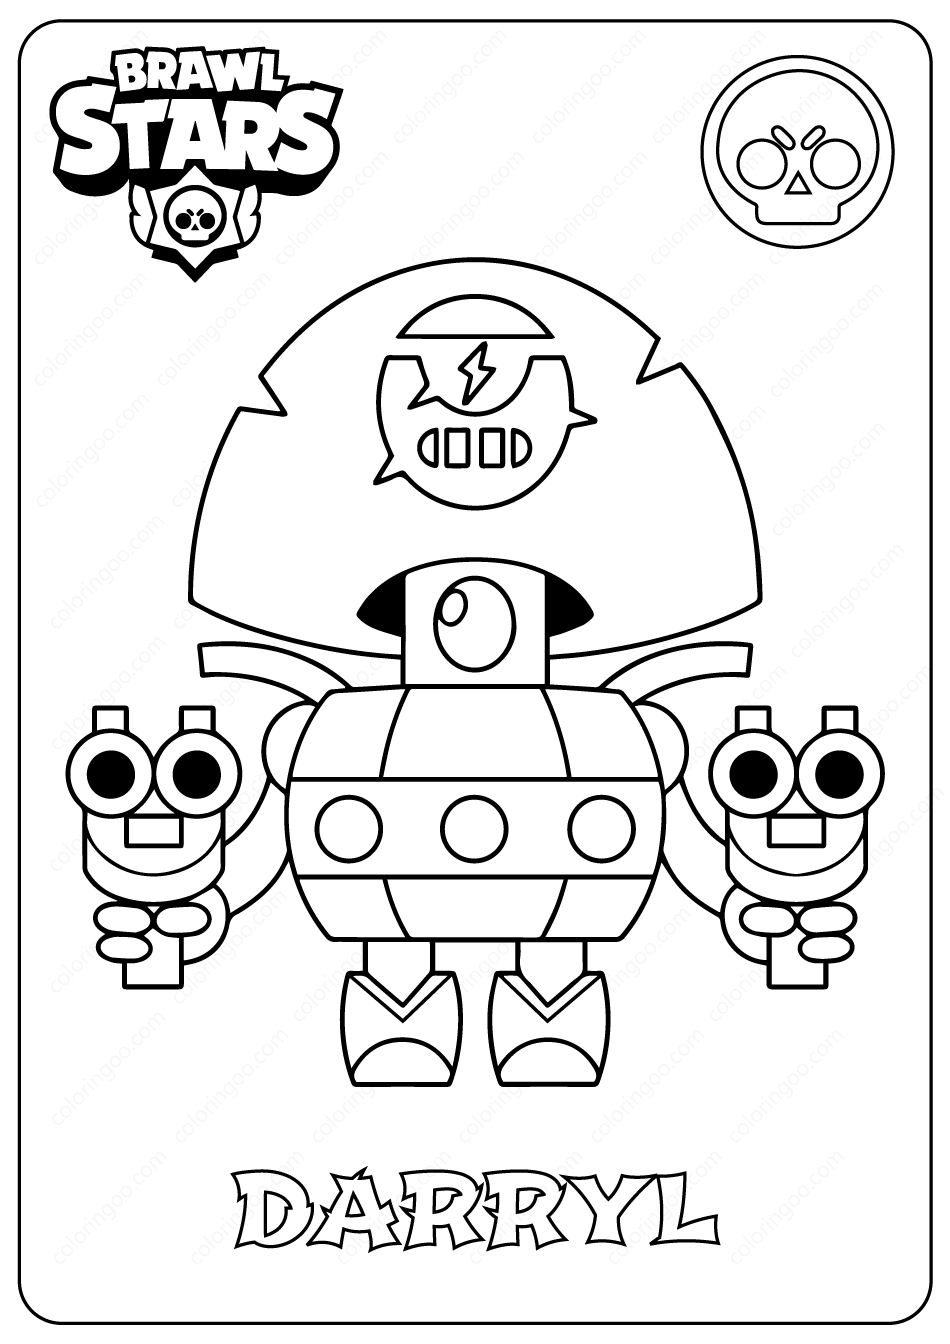 Brawl Stars Darryl Pdf Coloring Pages In 2020 Star Coloring Pages Coloring Pages Brawl